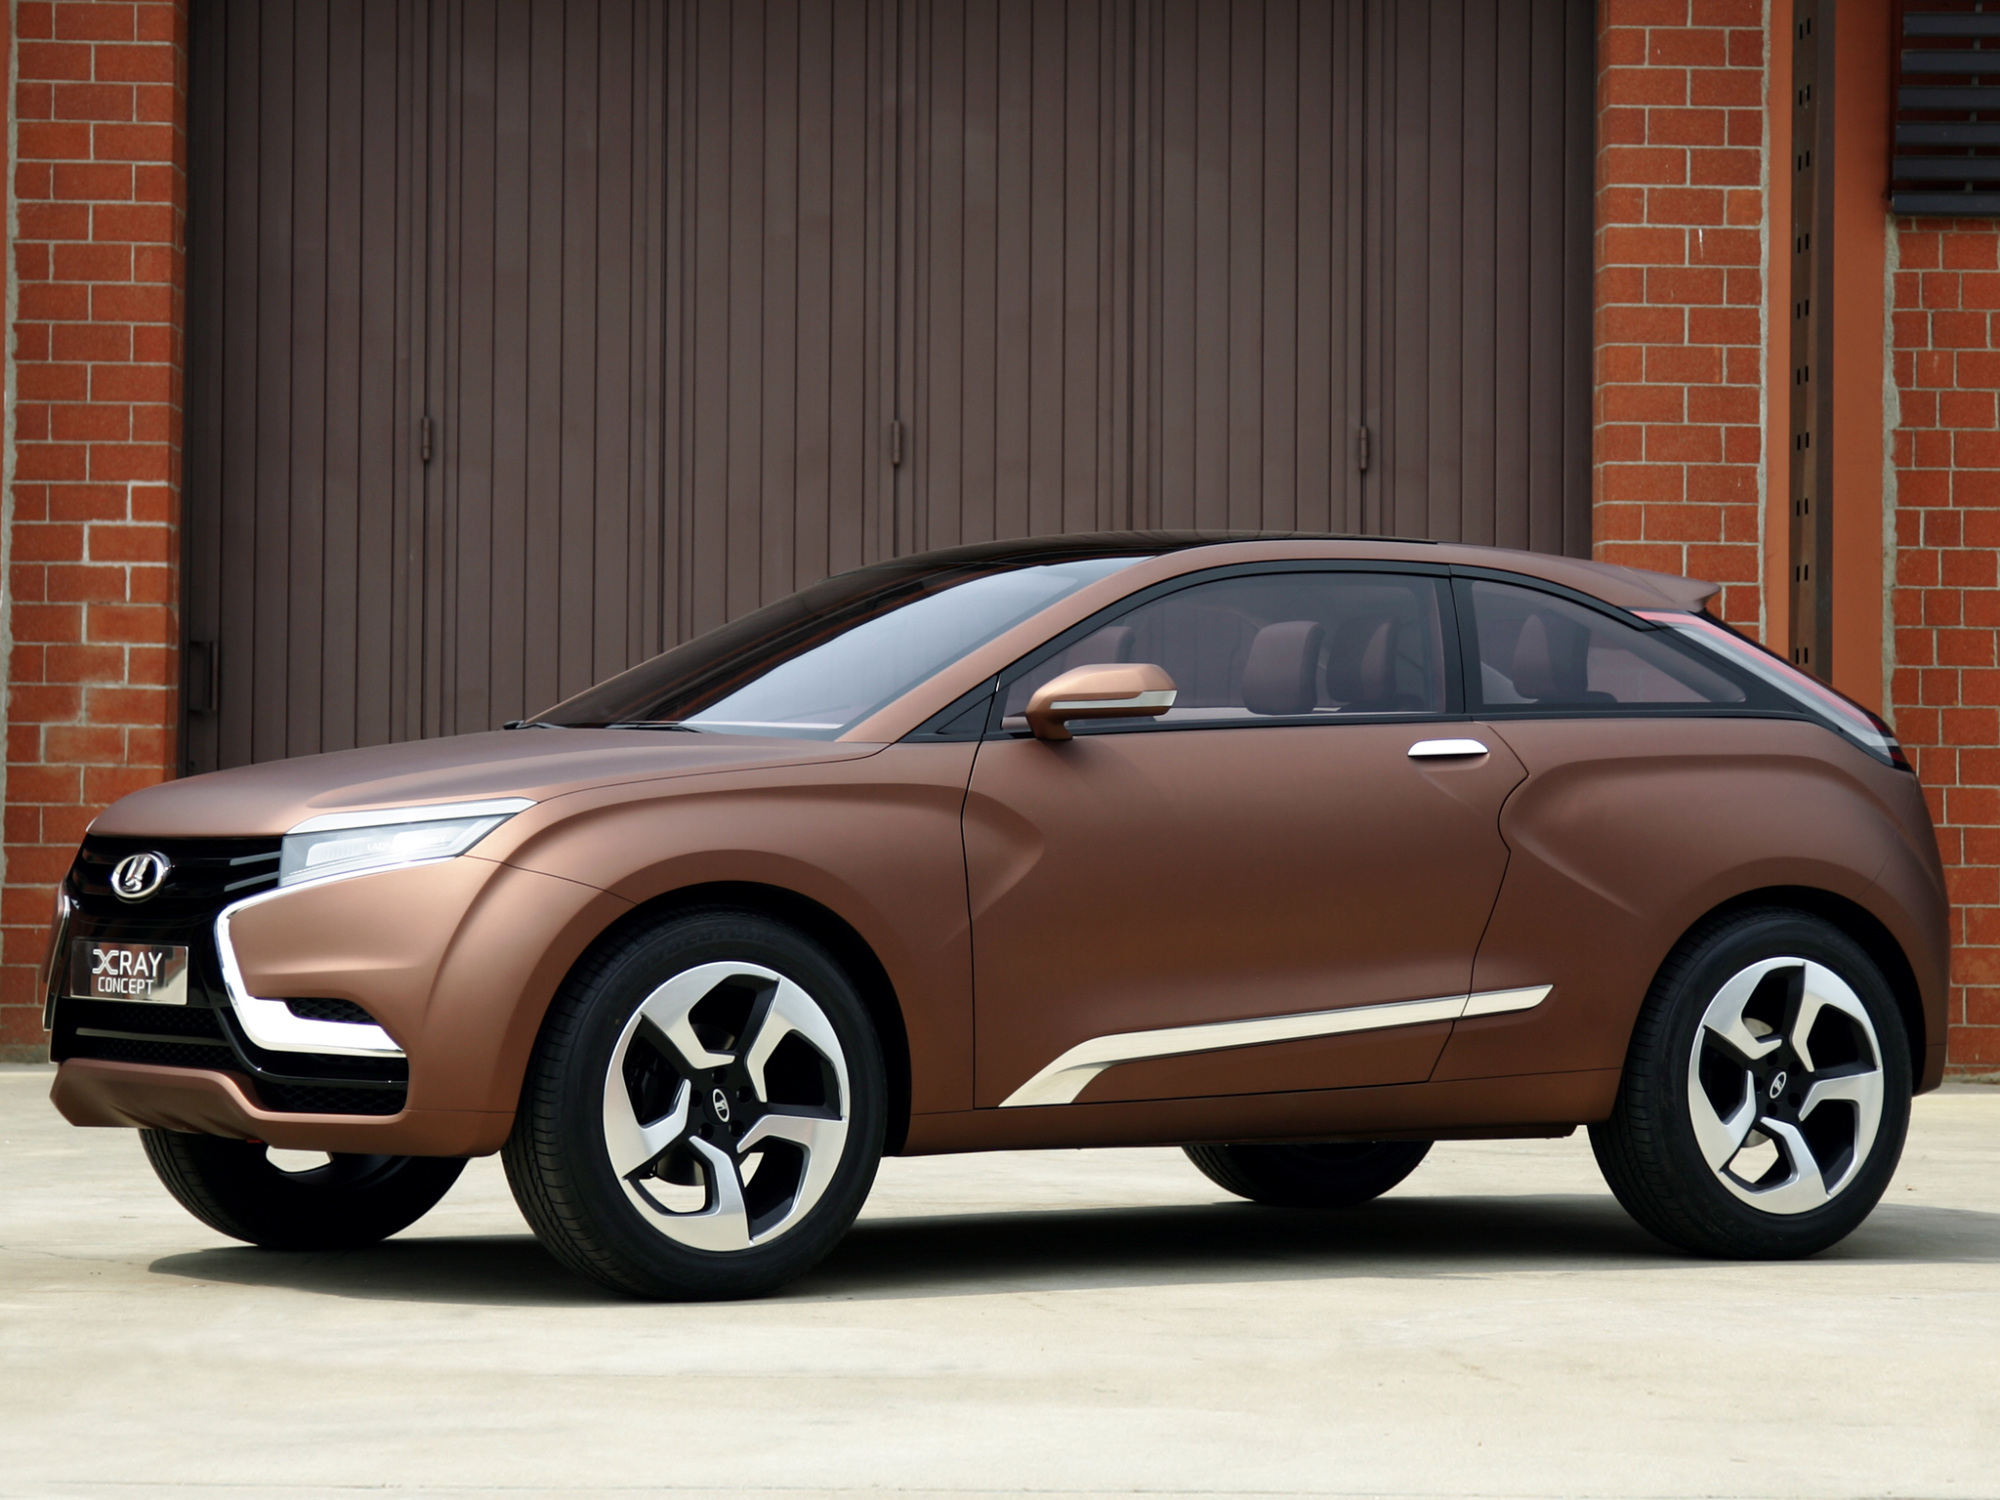 Mercedes Roadside Assistance >> 2013 Lada X-Ray Concept World Premiere in Moscow [VIDEO]